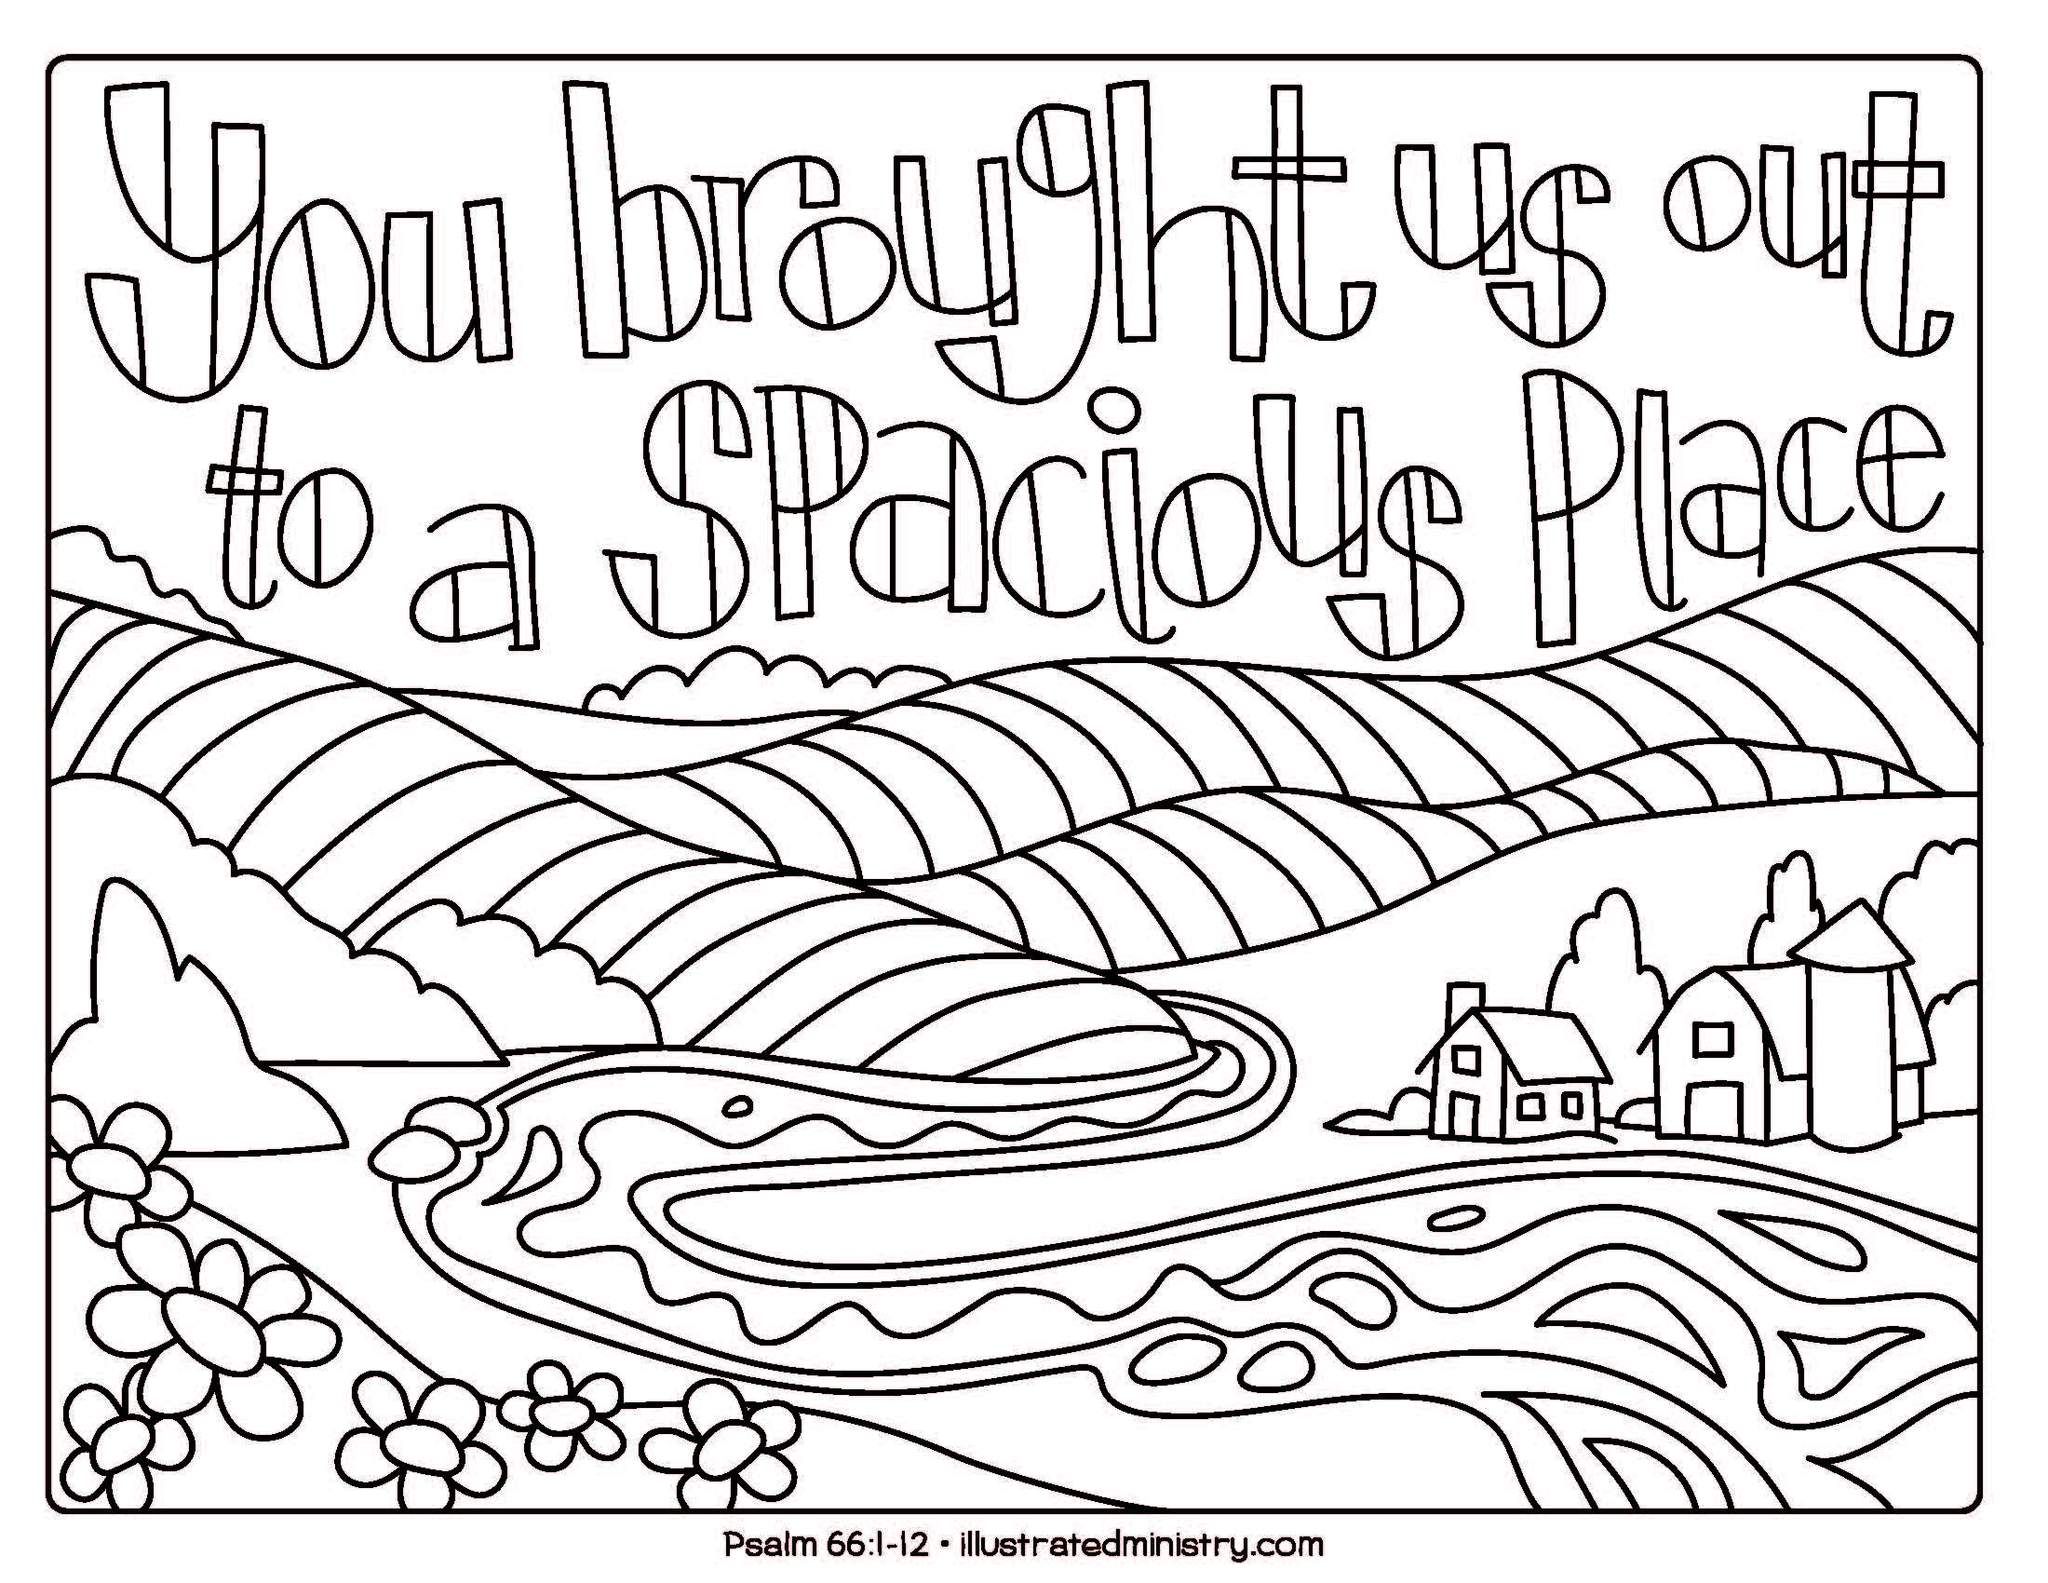 Bible Story Coloring Pages: Fall 2019 - Illustrated Ministry